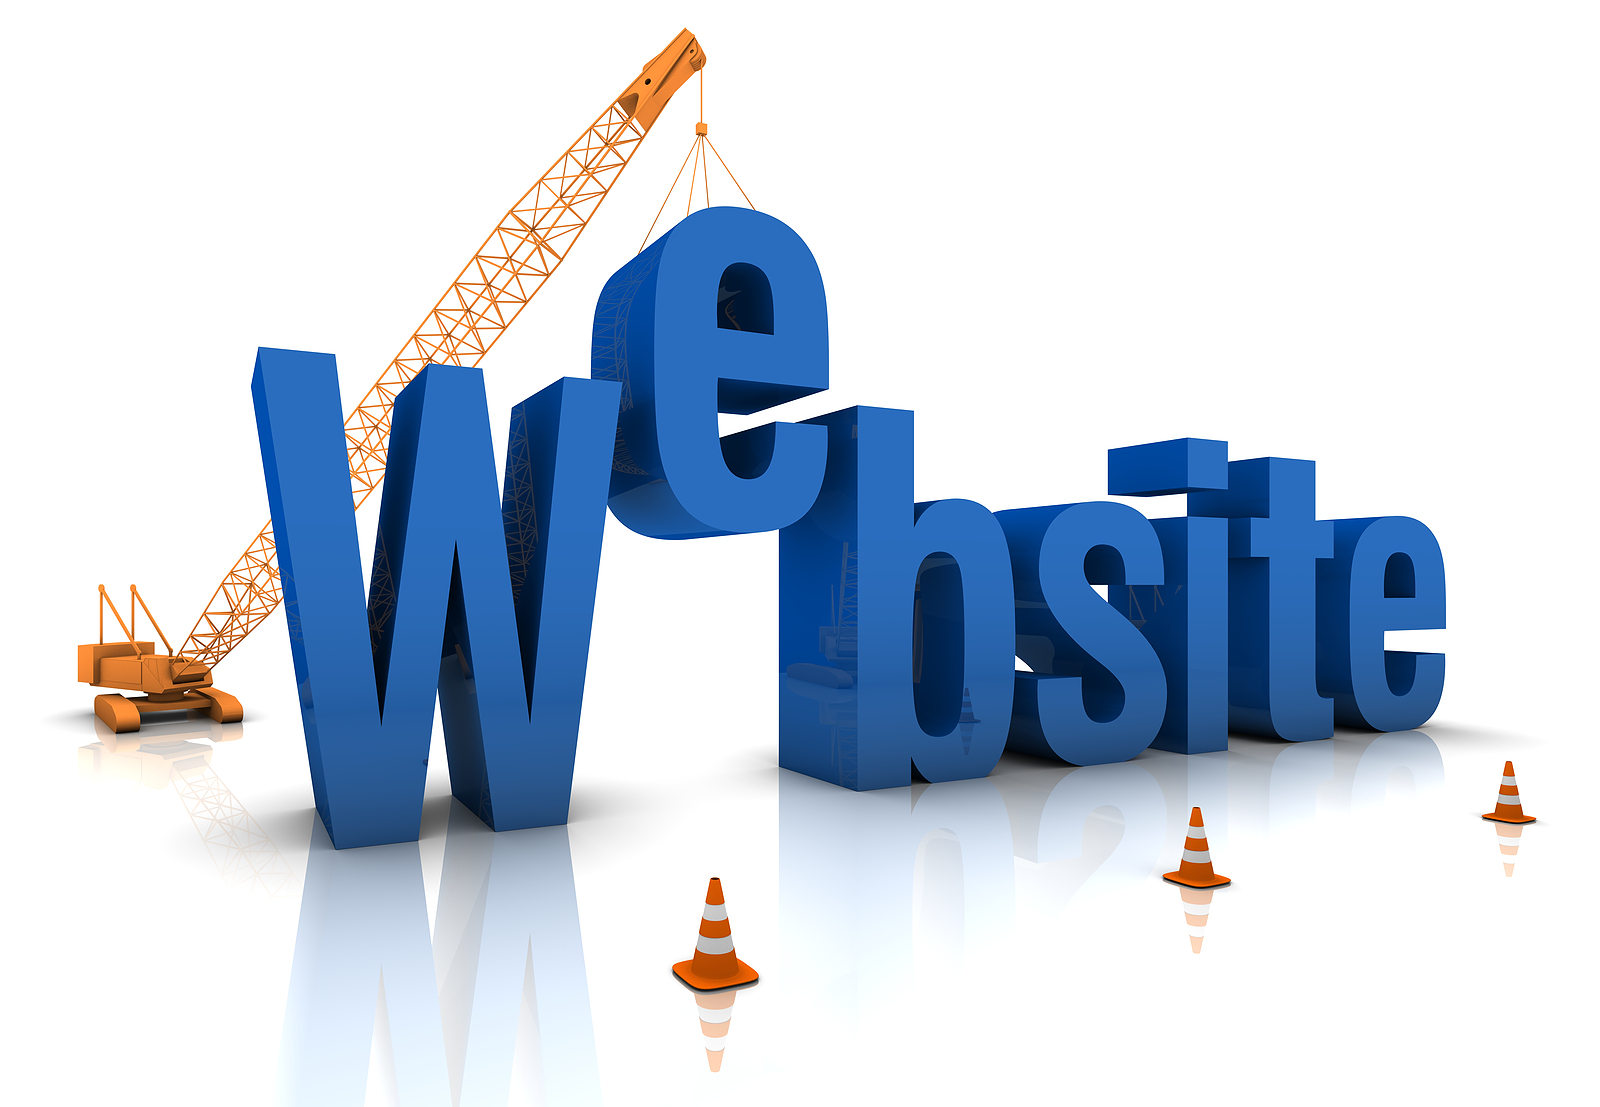 Le site internet descriptions explications par neocamino An website